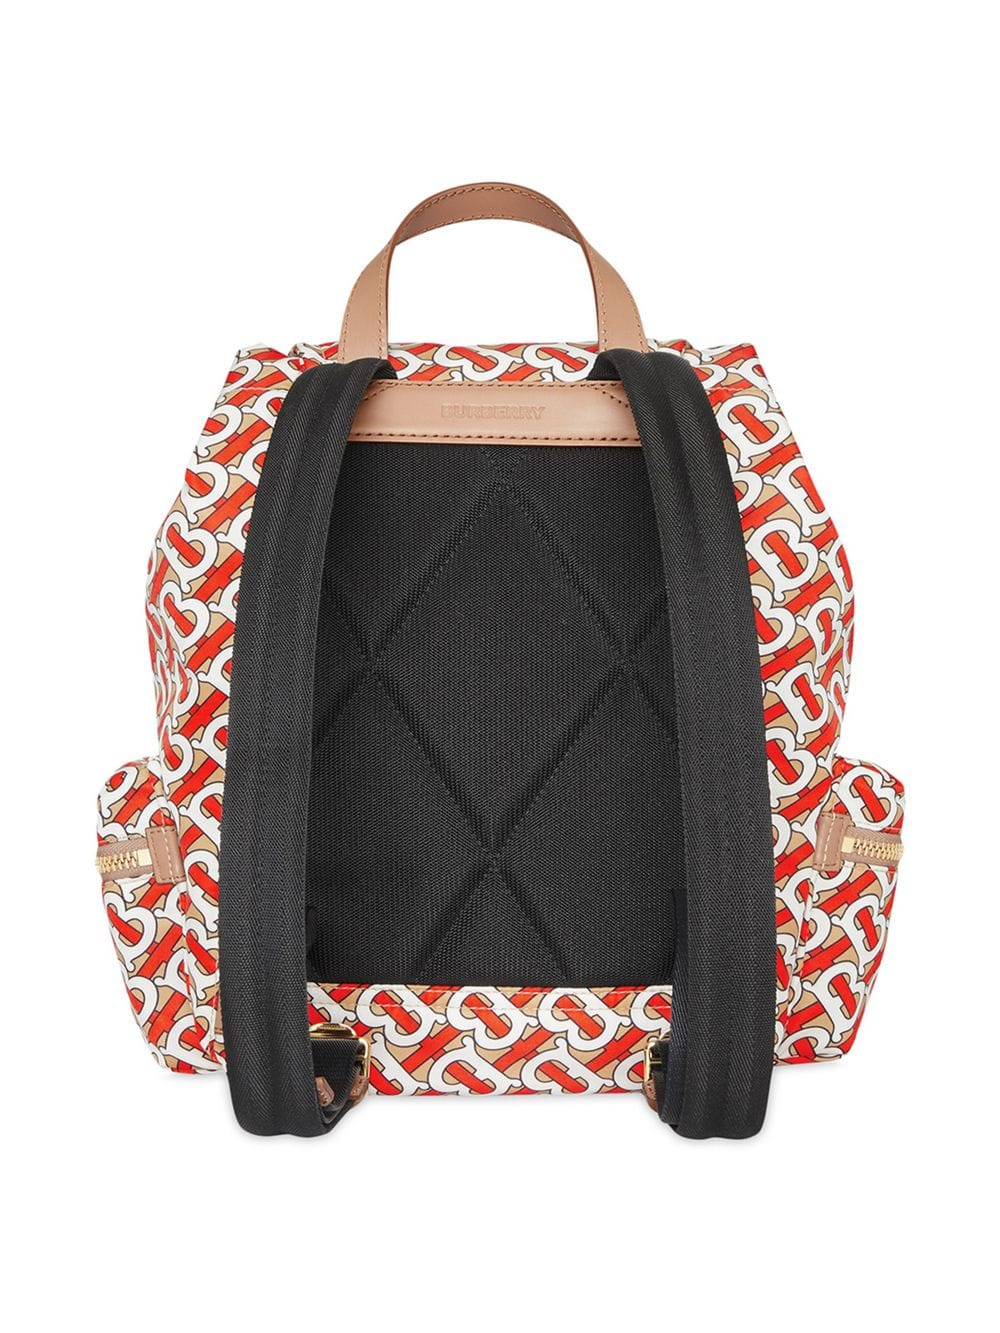 9b220049a6a Medium The Rucksack Backpack In Nylon With Monogram Print - BURBERRY ...